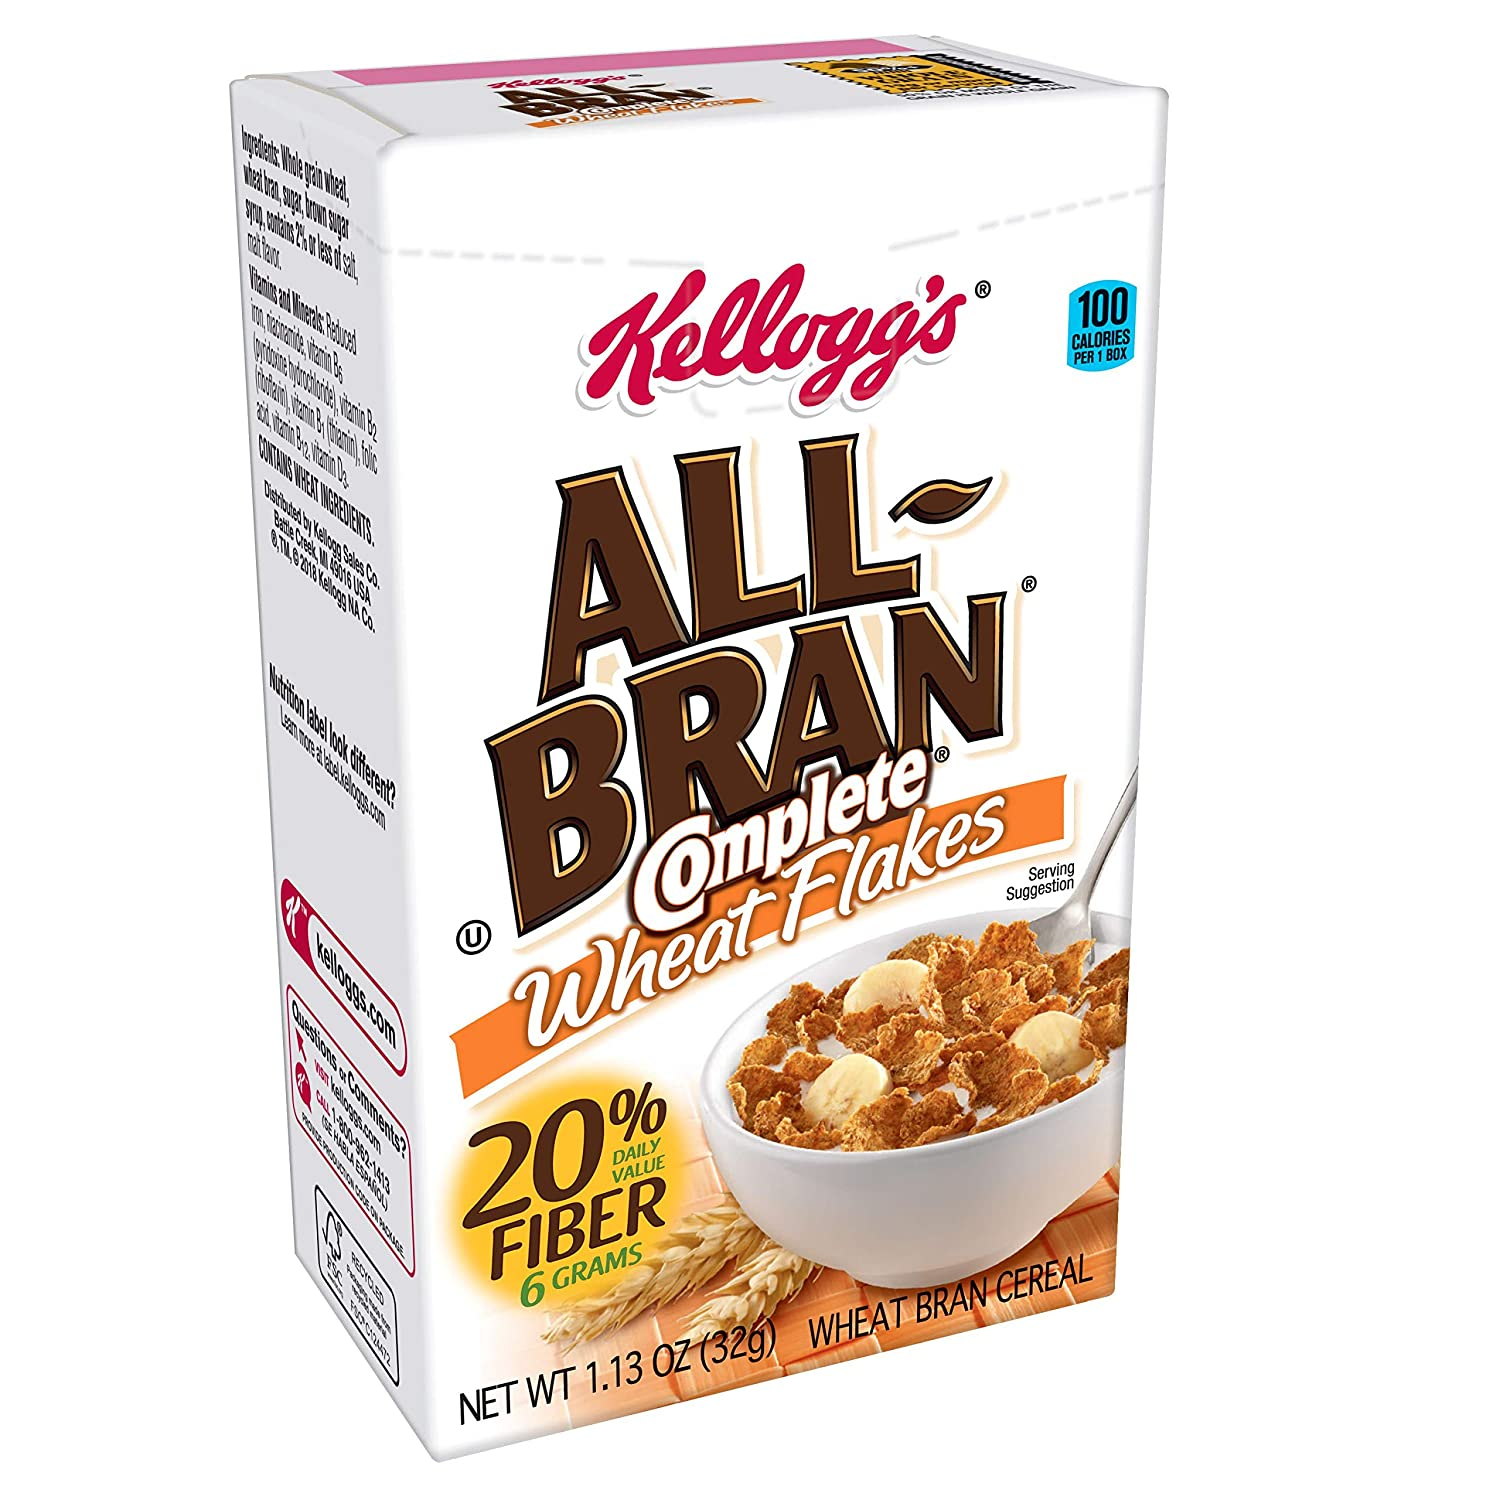 Kellogg's All-Bran Complete Wheat Flakes, Breakfast Cereal, Excellent Source of Fiber, Single Serve, 1.13 oz Box(Pack of 70)